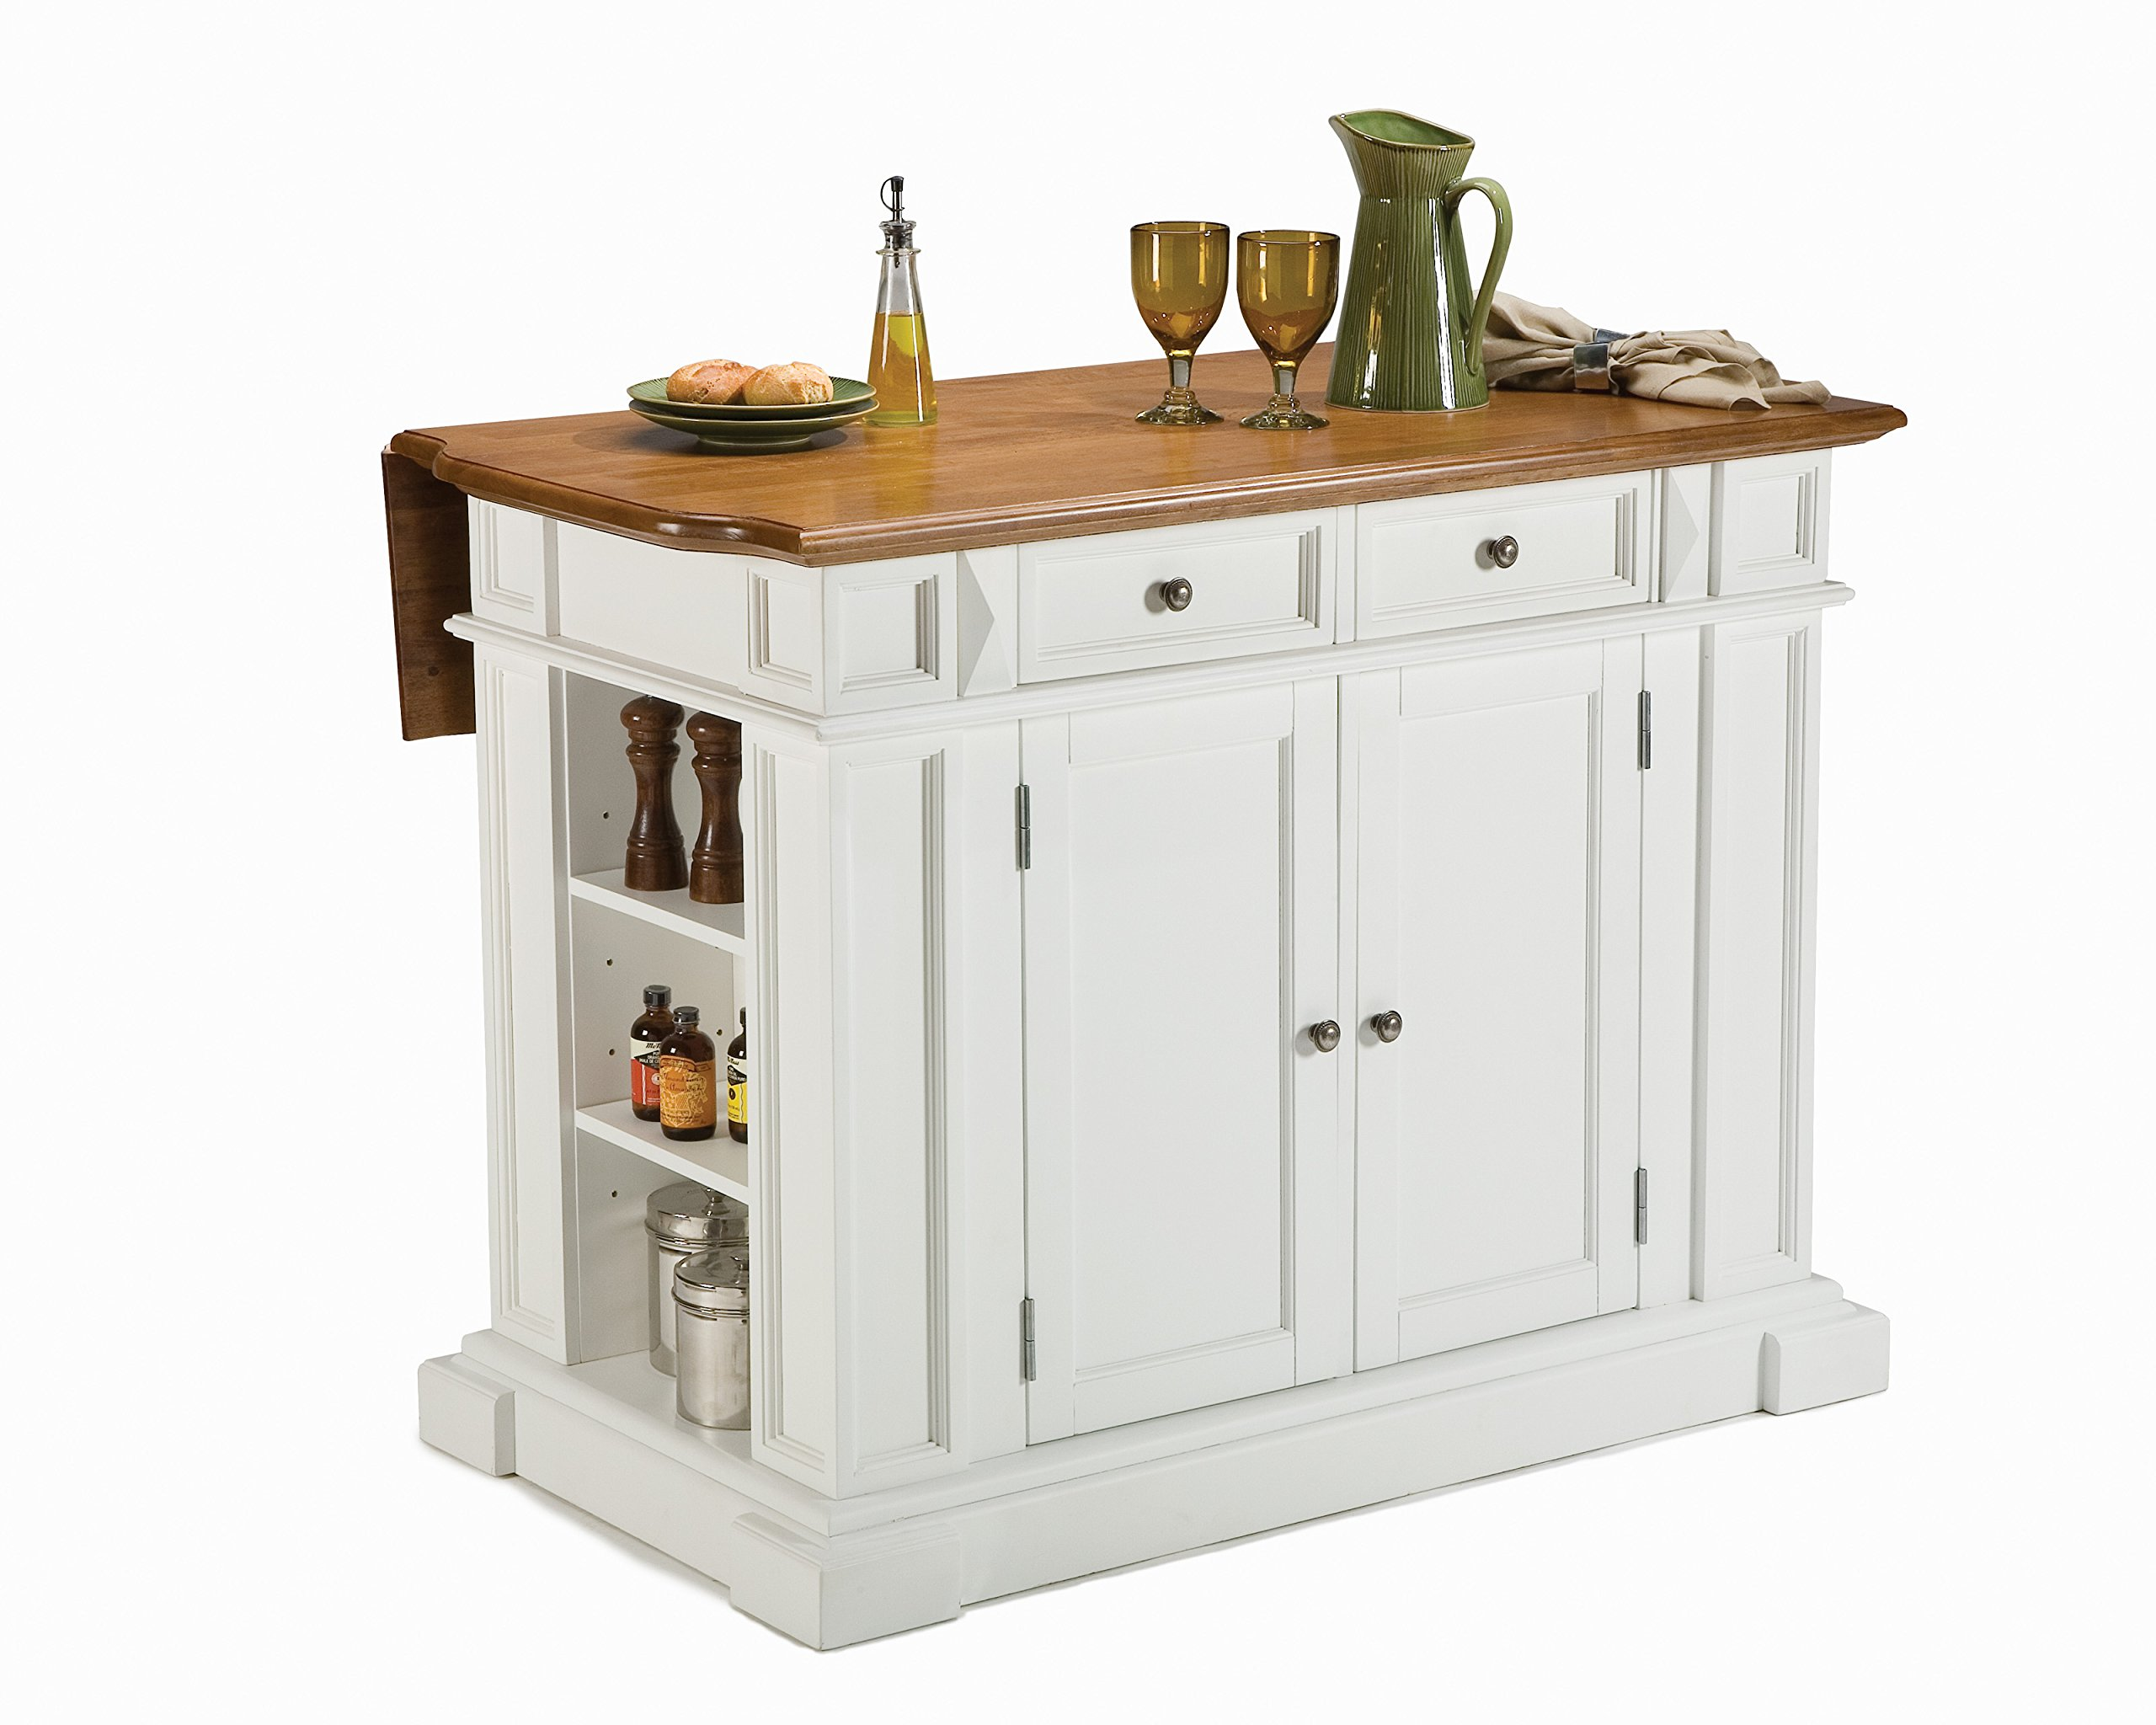 Americana White & Distressed Oak Kitchen Island by Home Styles by Home Styles